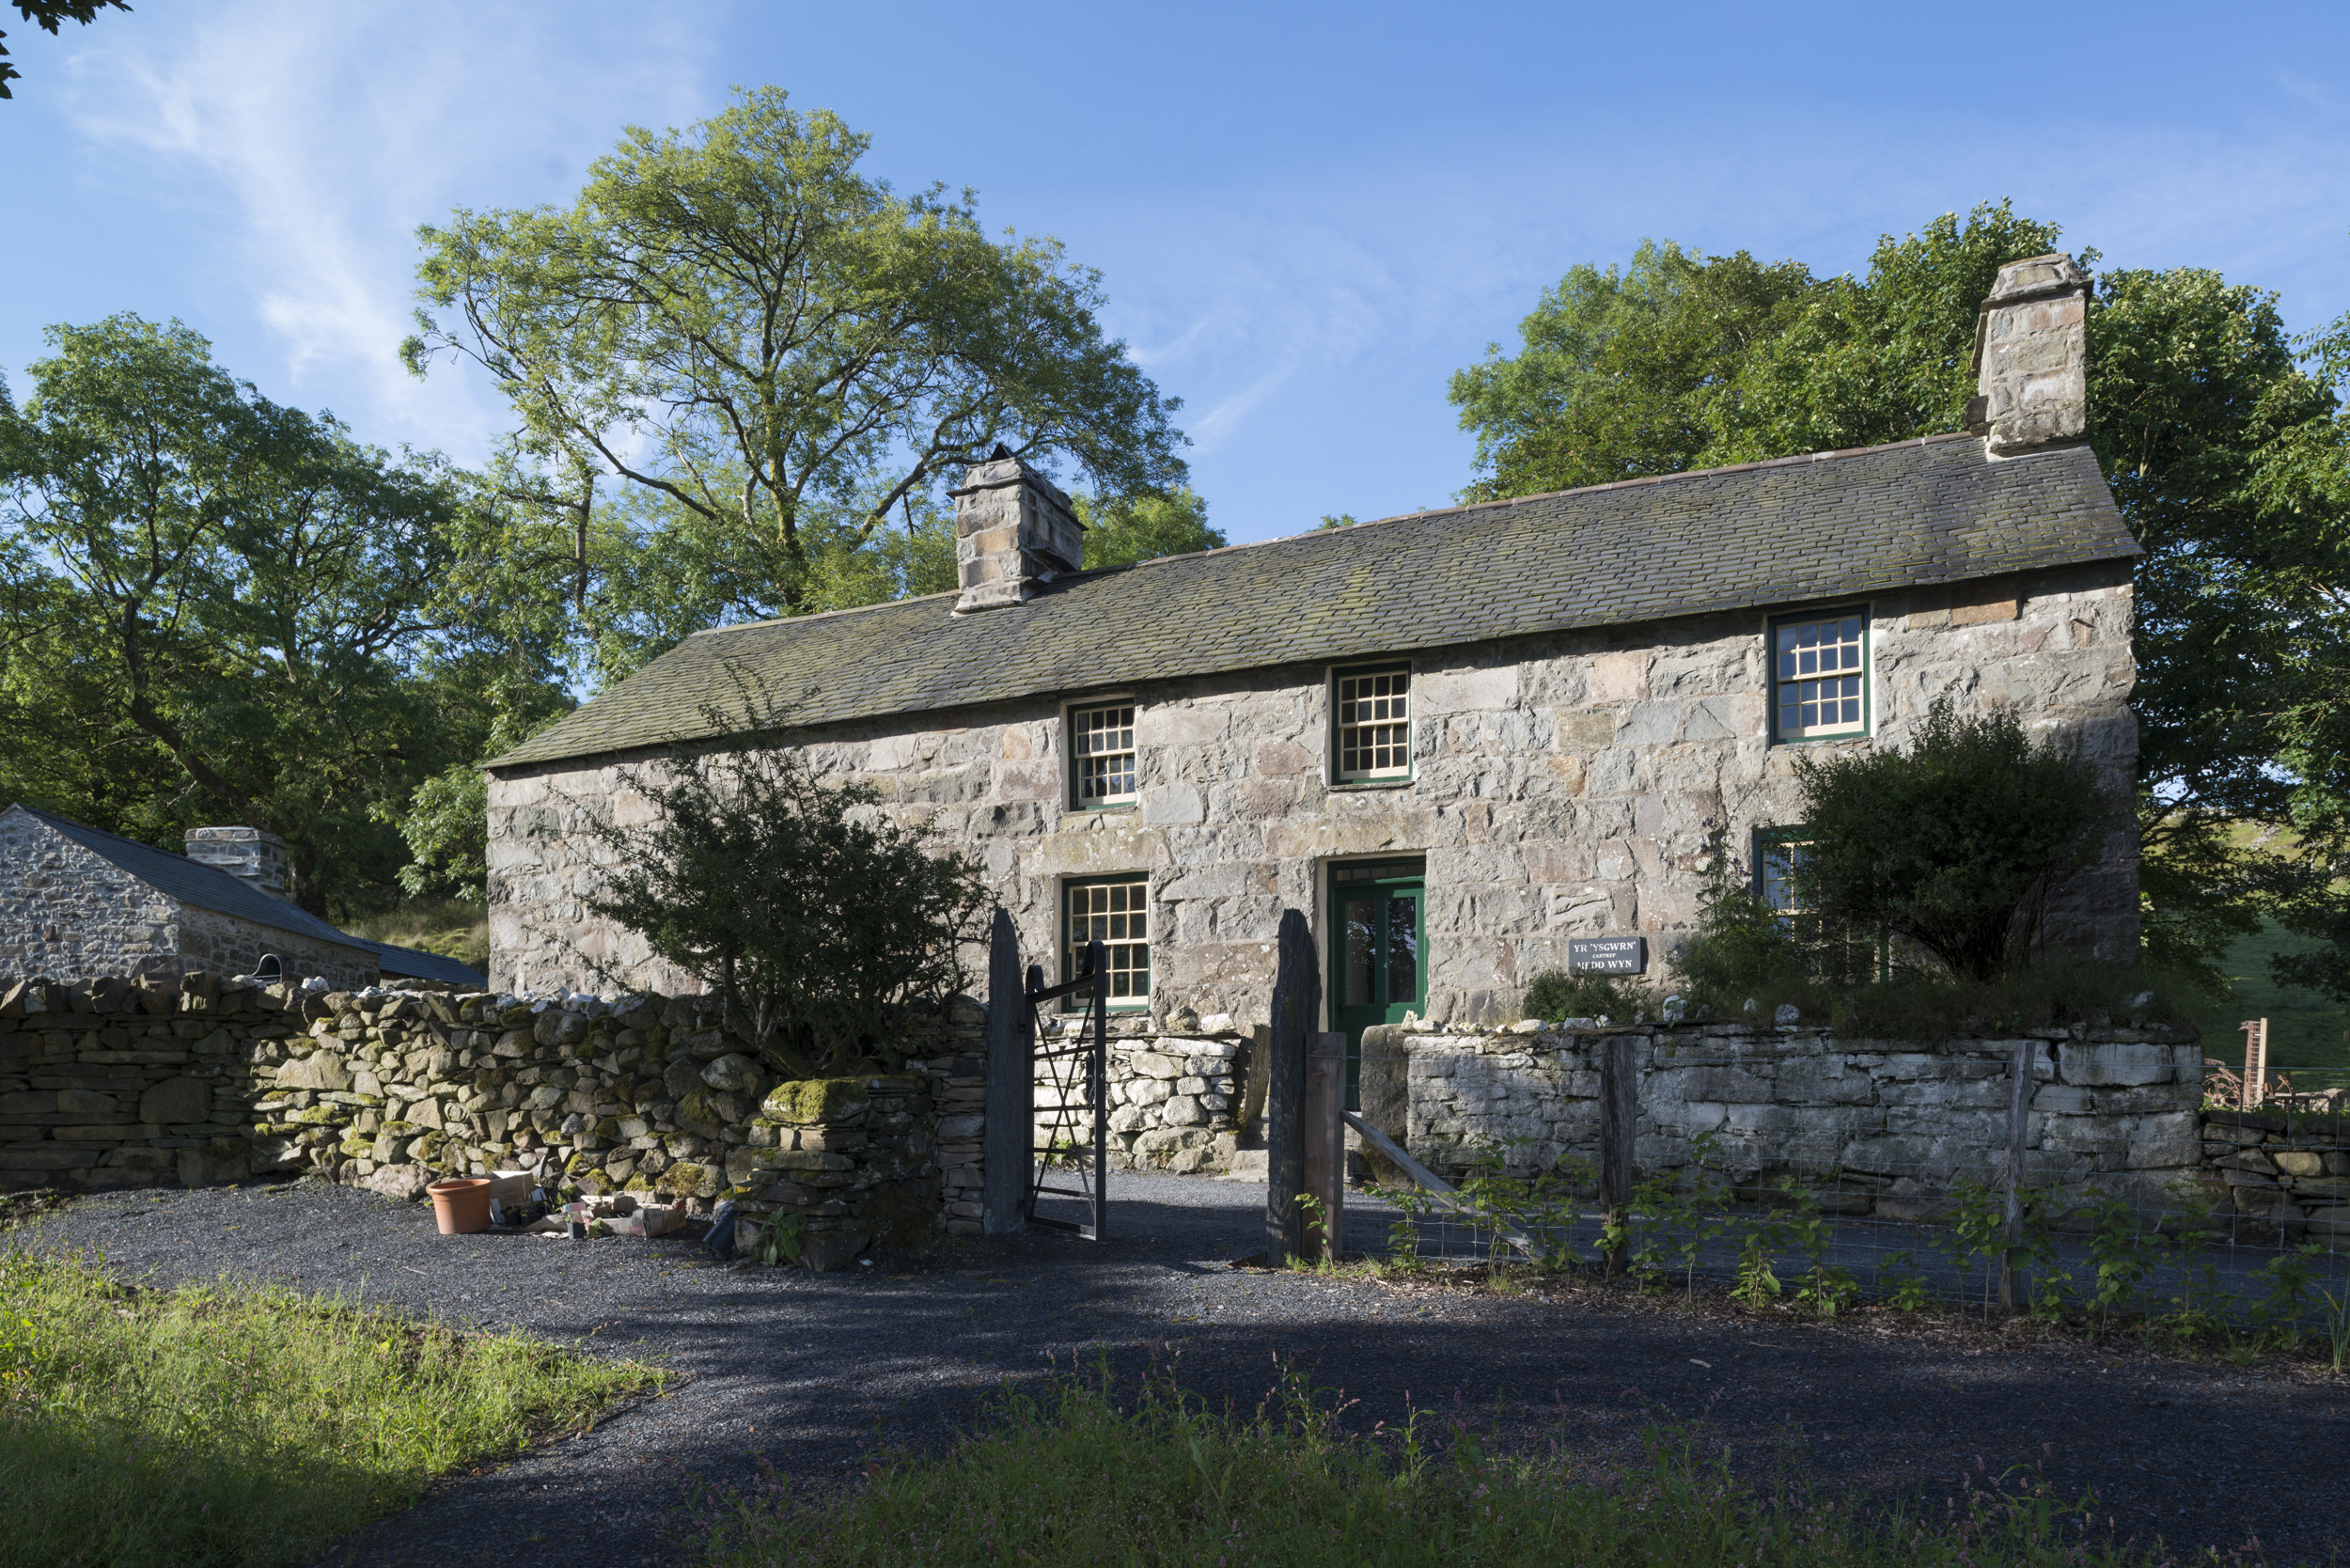 Yr Ysgwrn was the farmstead of the Evans family